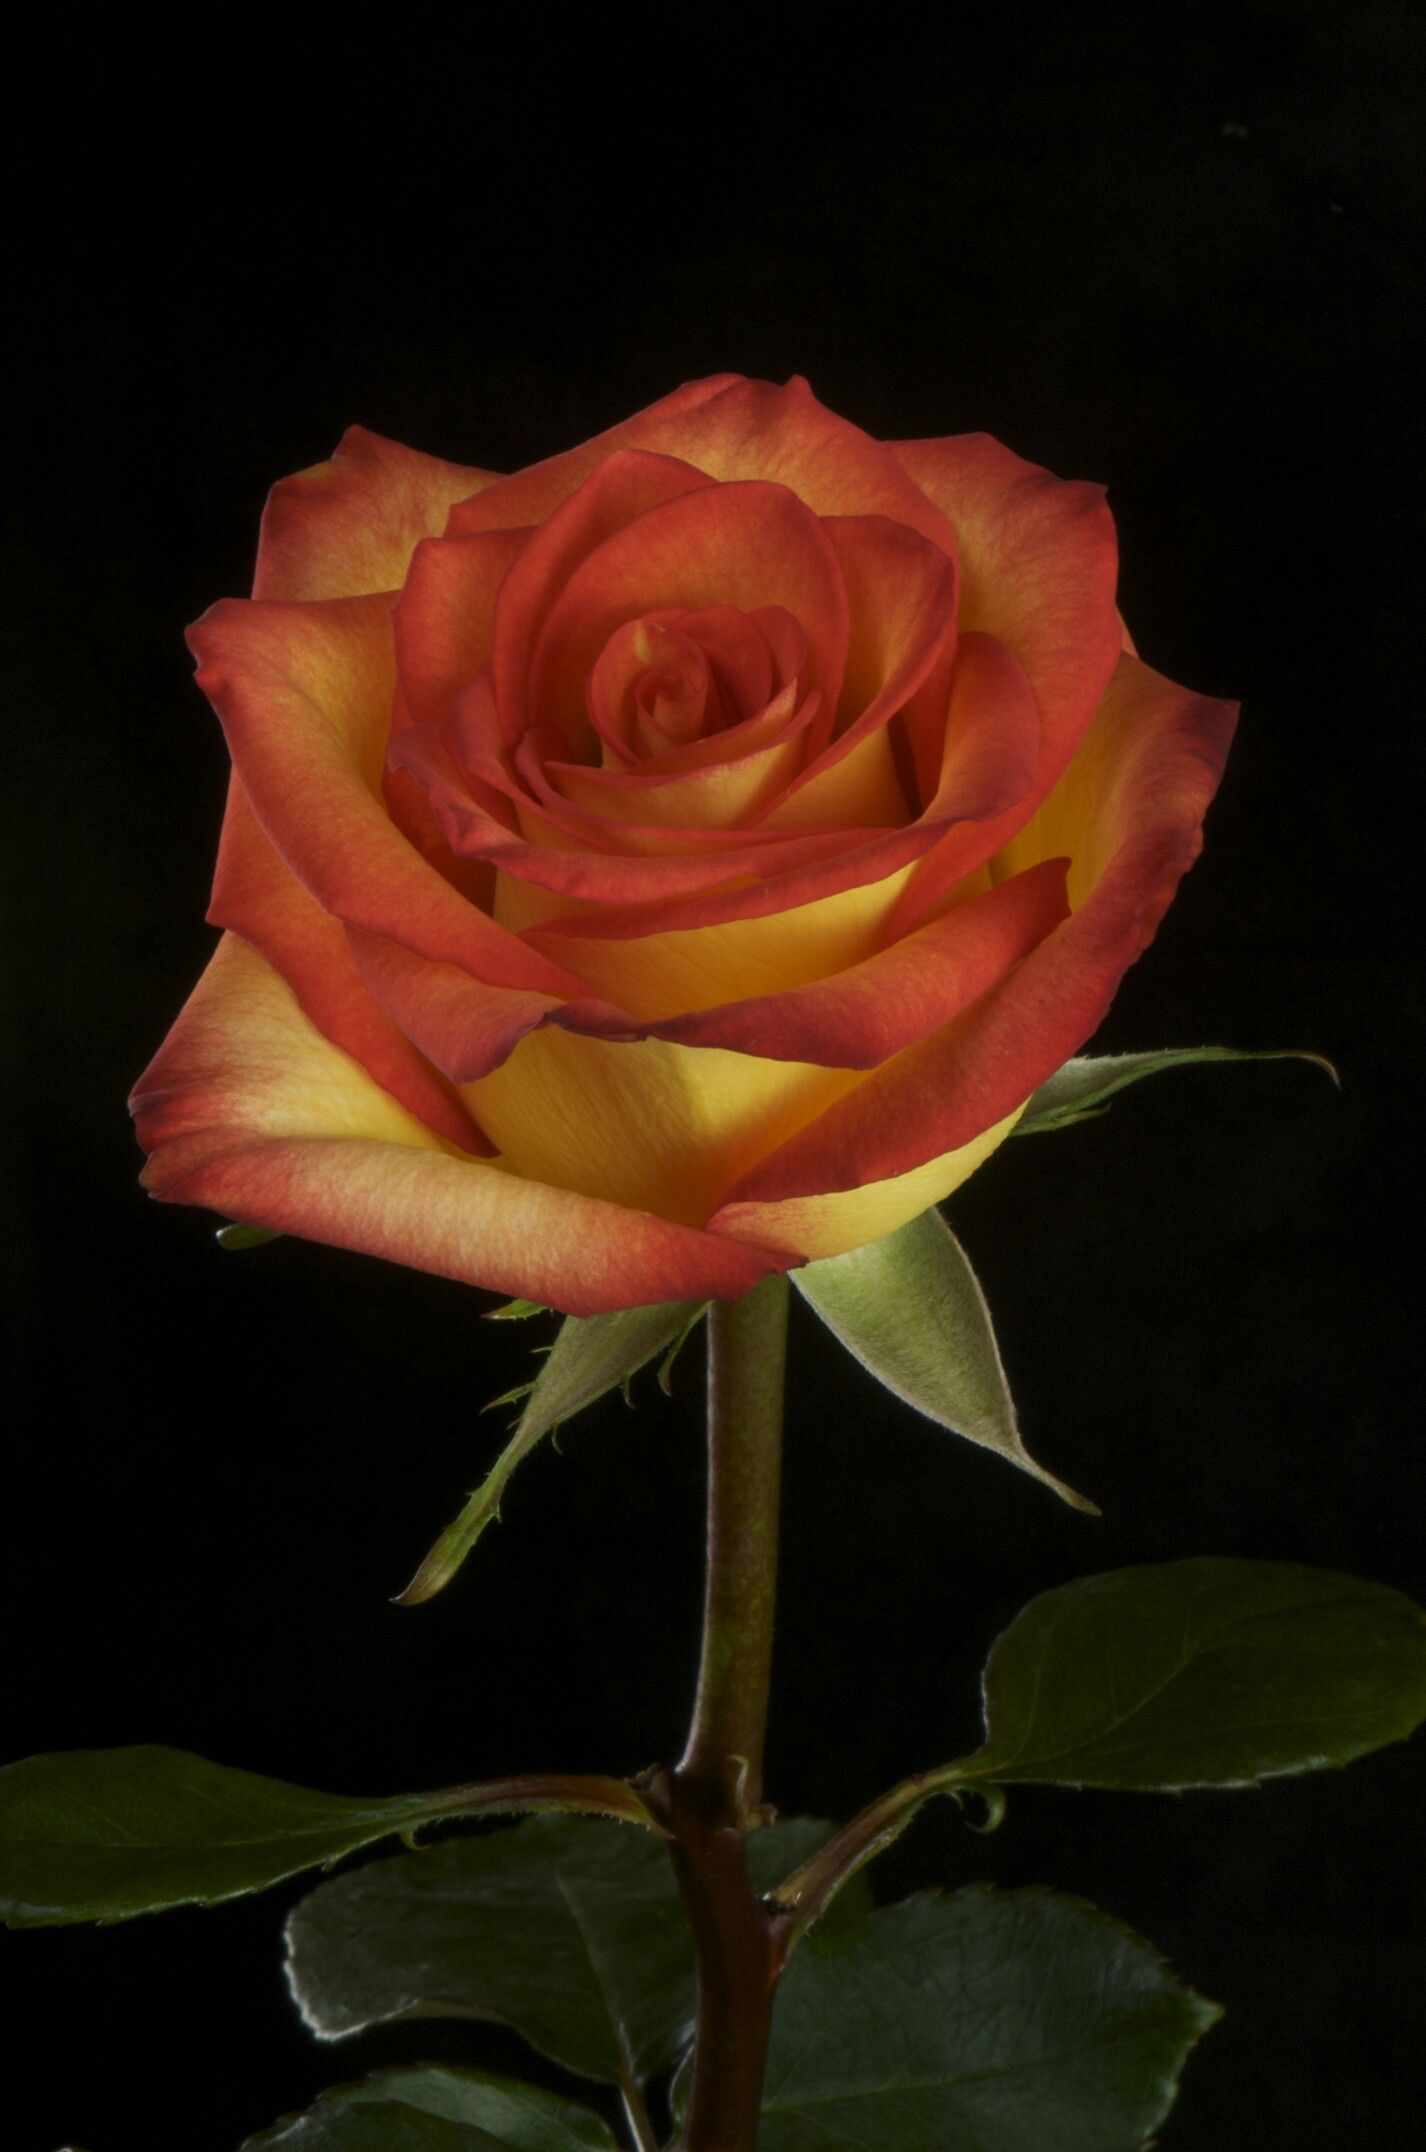 Pin by นันท์นภัส เรไรวรรณ on A ุred♡rose♡ | Pinterest | Flowers ...